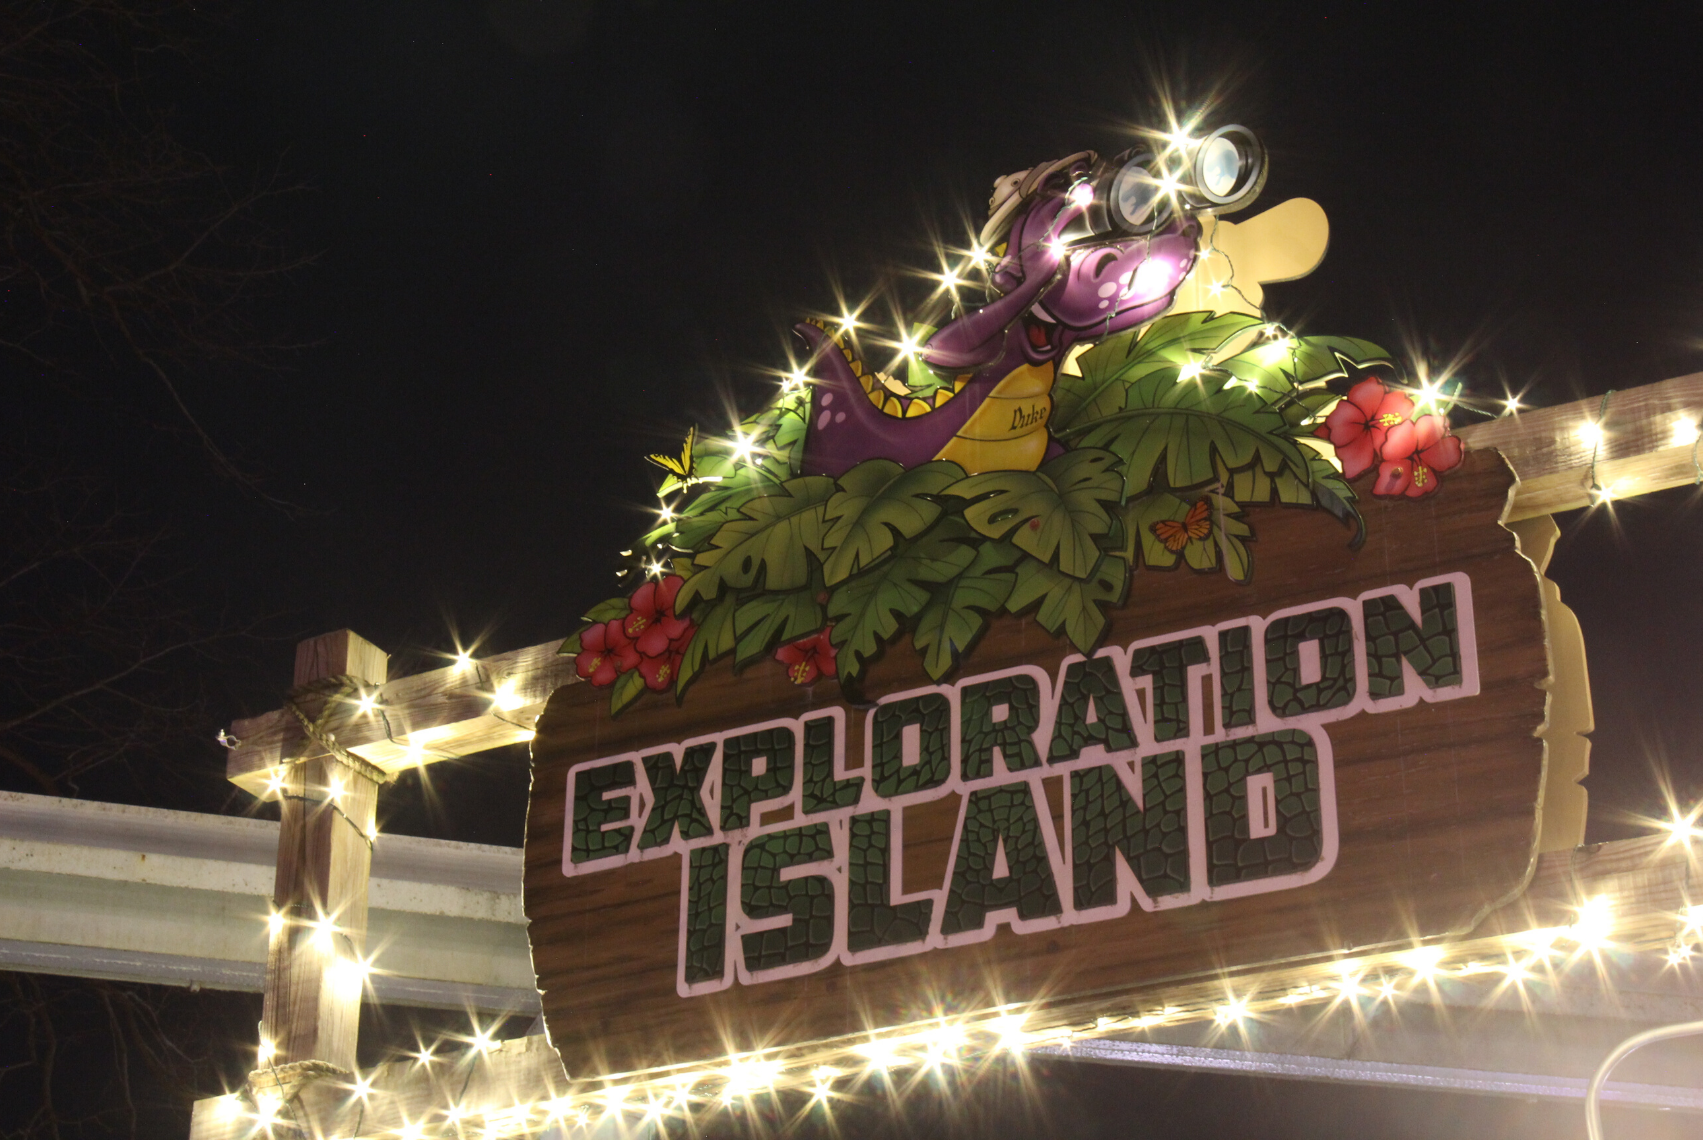 Exploration Island sign covered in white holiday lights